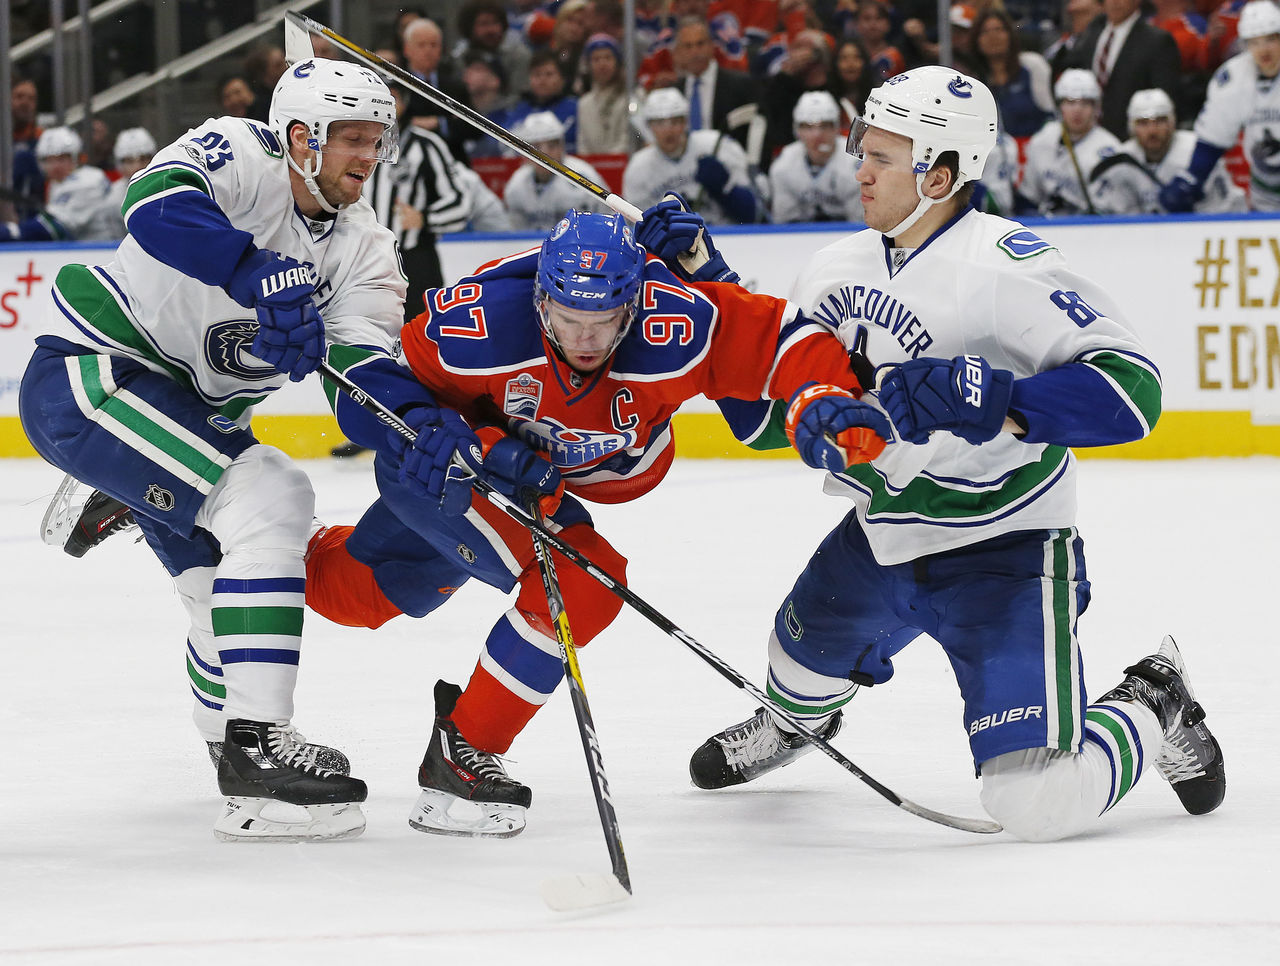 Cropped 2017 03 19t044608z 572058952 nocid rtrmadp 3 nhl vancouver canucks at edmonton oilers